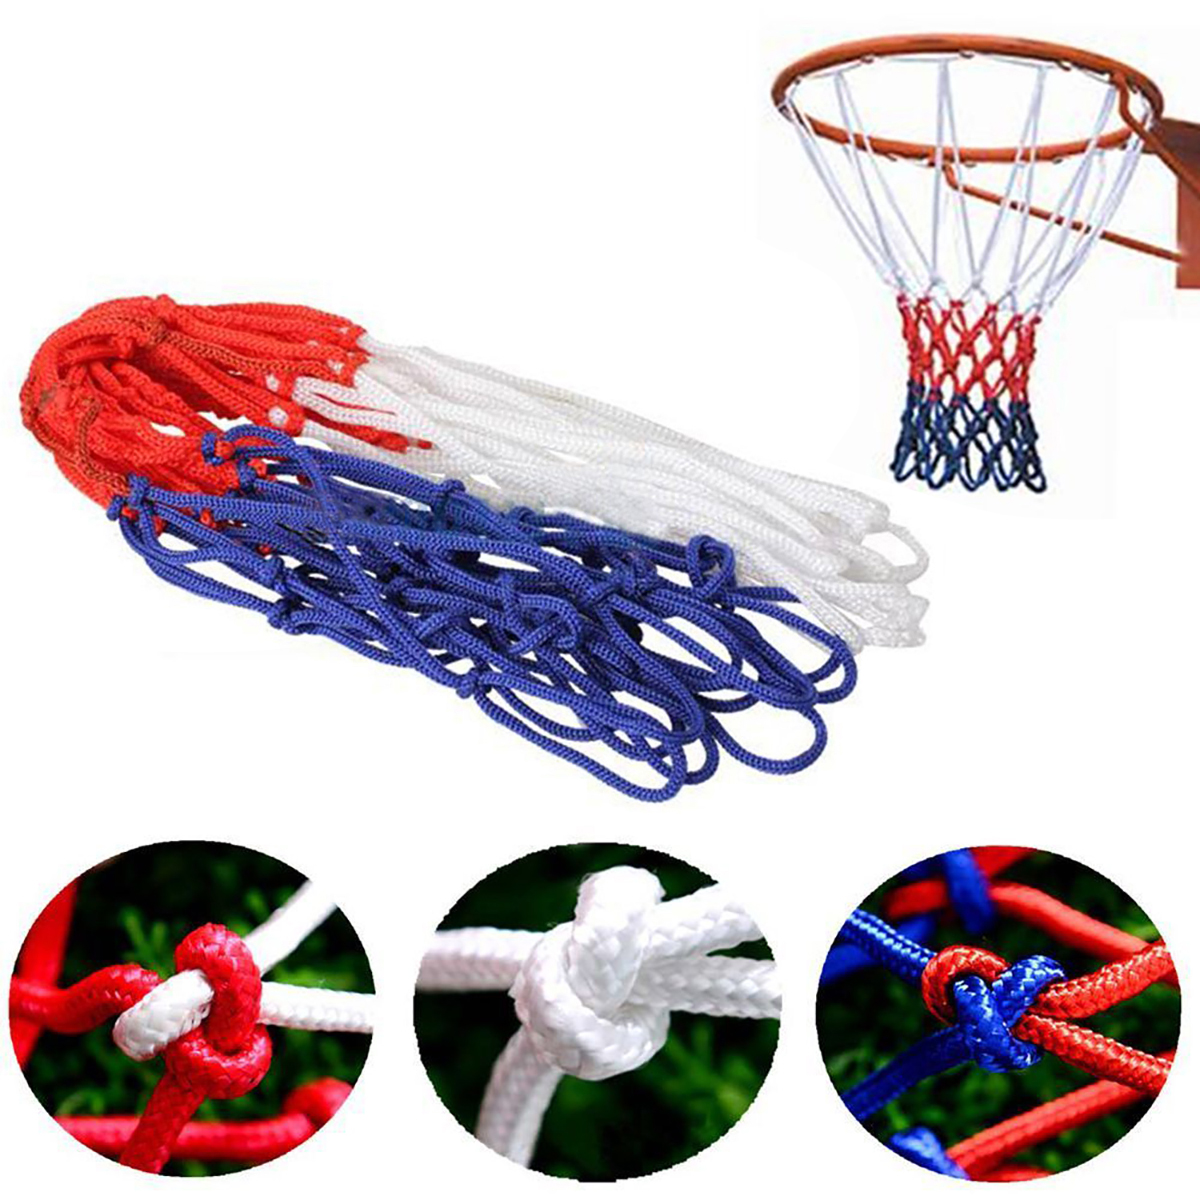 Great Standard Nylon Thread Basketball Hoop Mesh Net Backboard Rim Ball JP